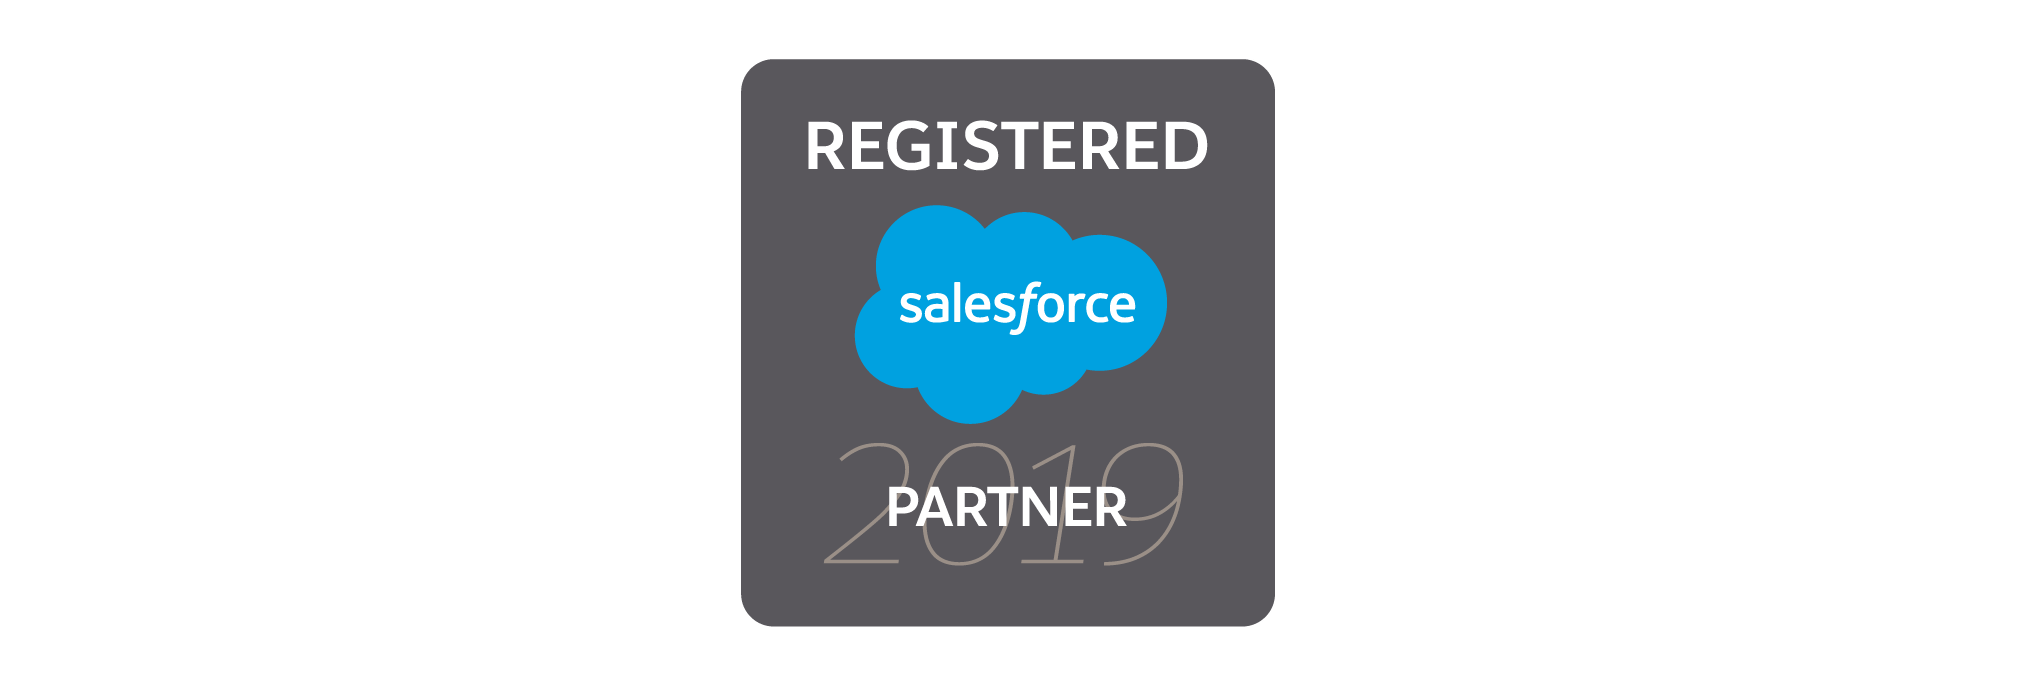 2019_Salesforce_Partner_Badge_Registered_RGB copy.png